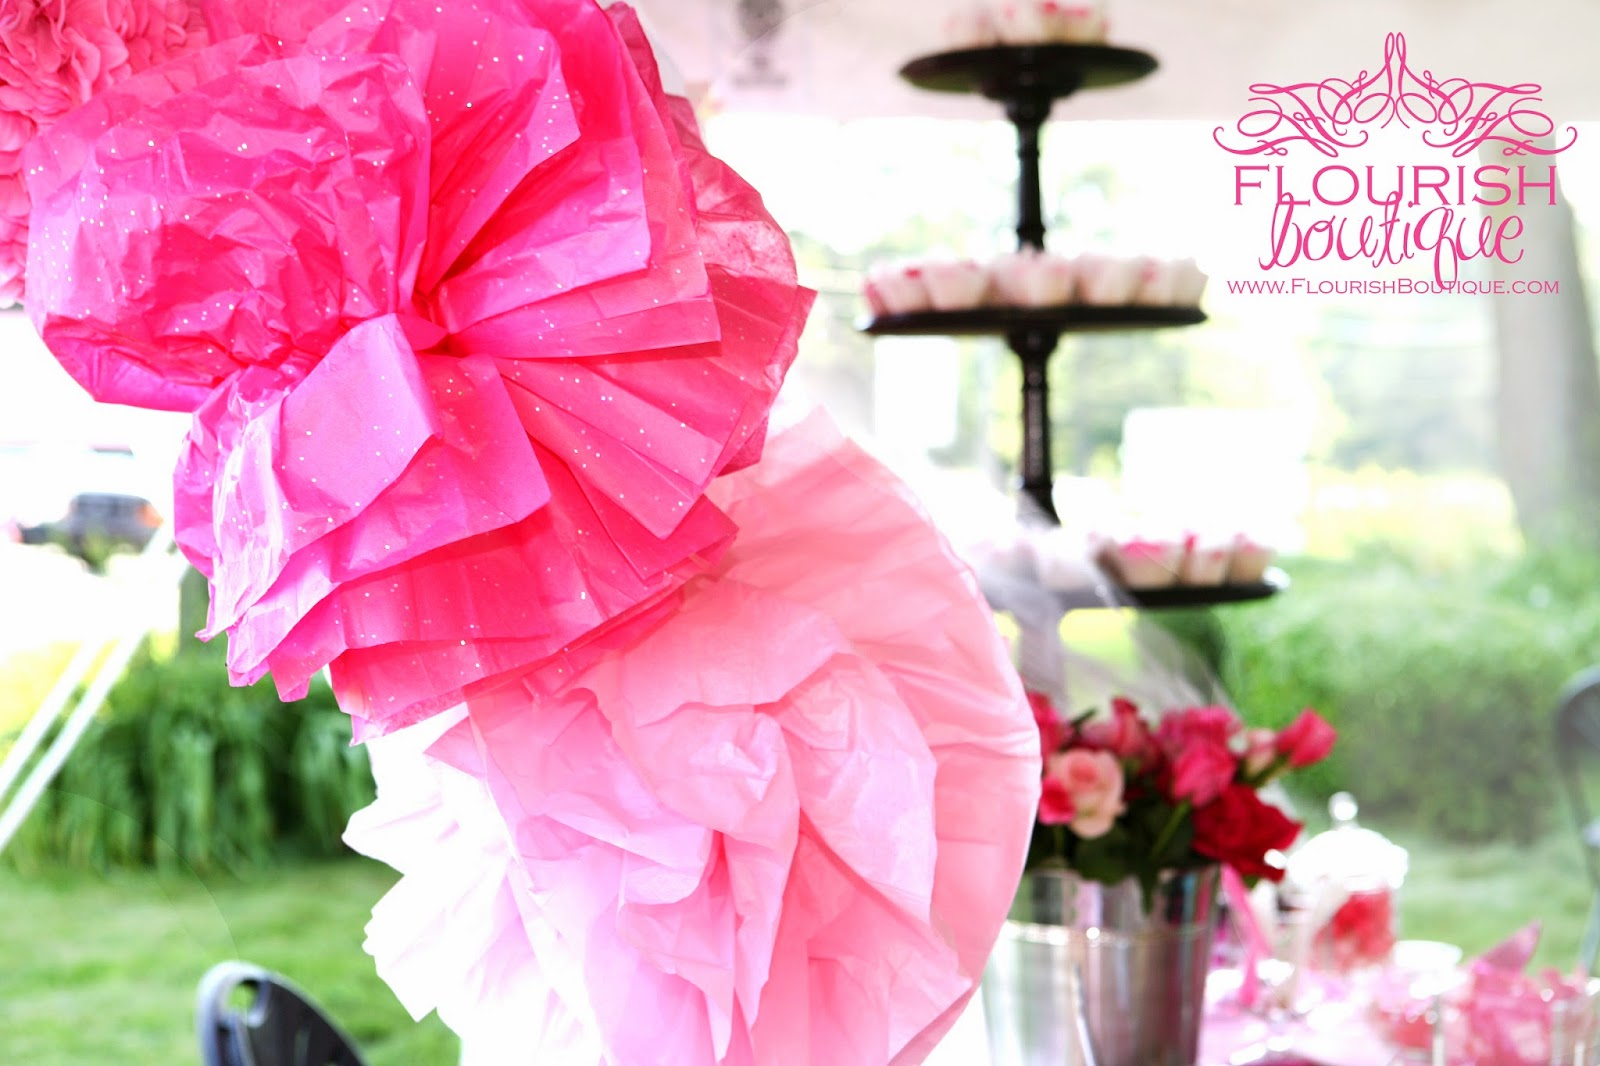 pink girly party decorations Flourish Boutique